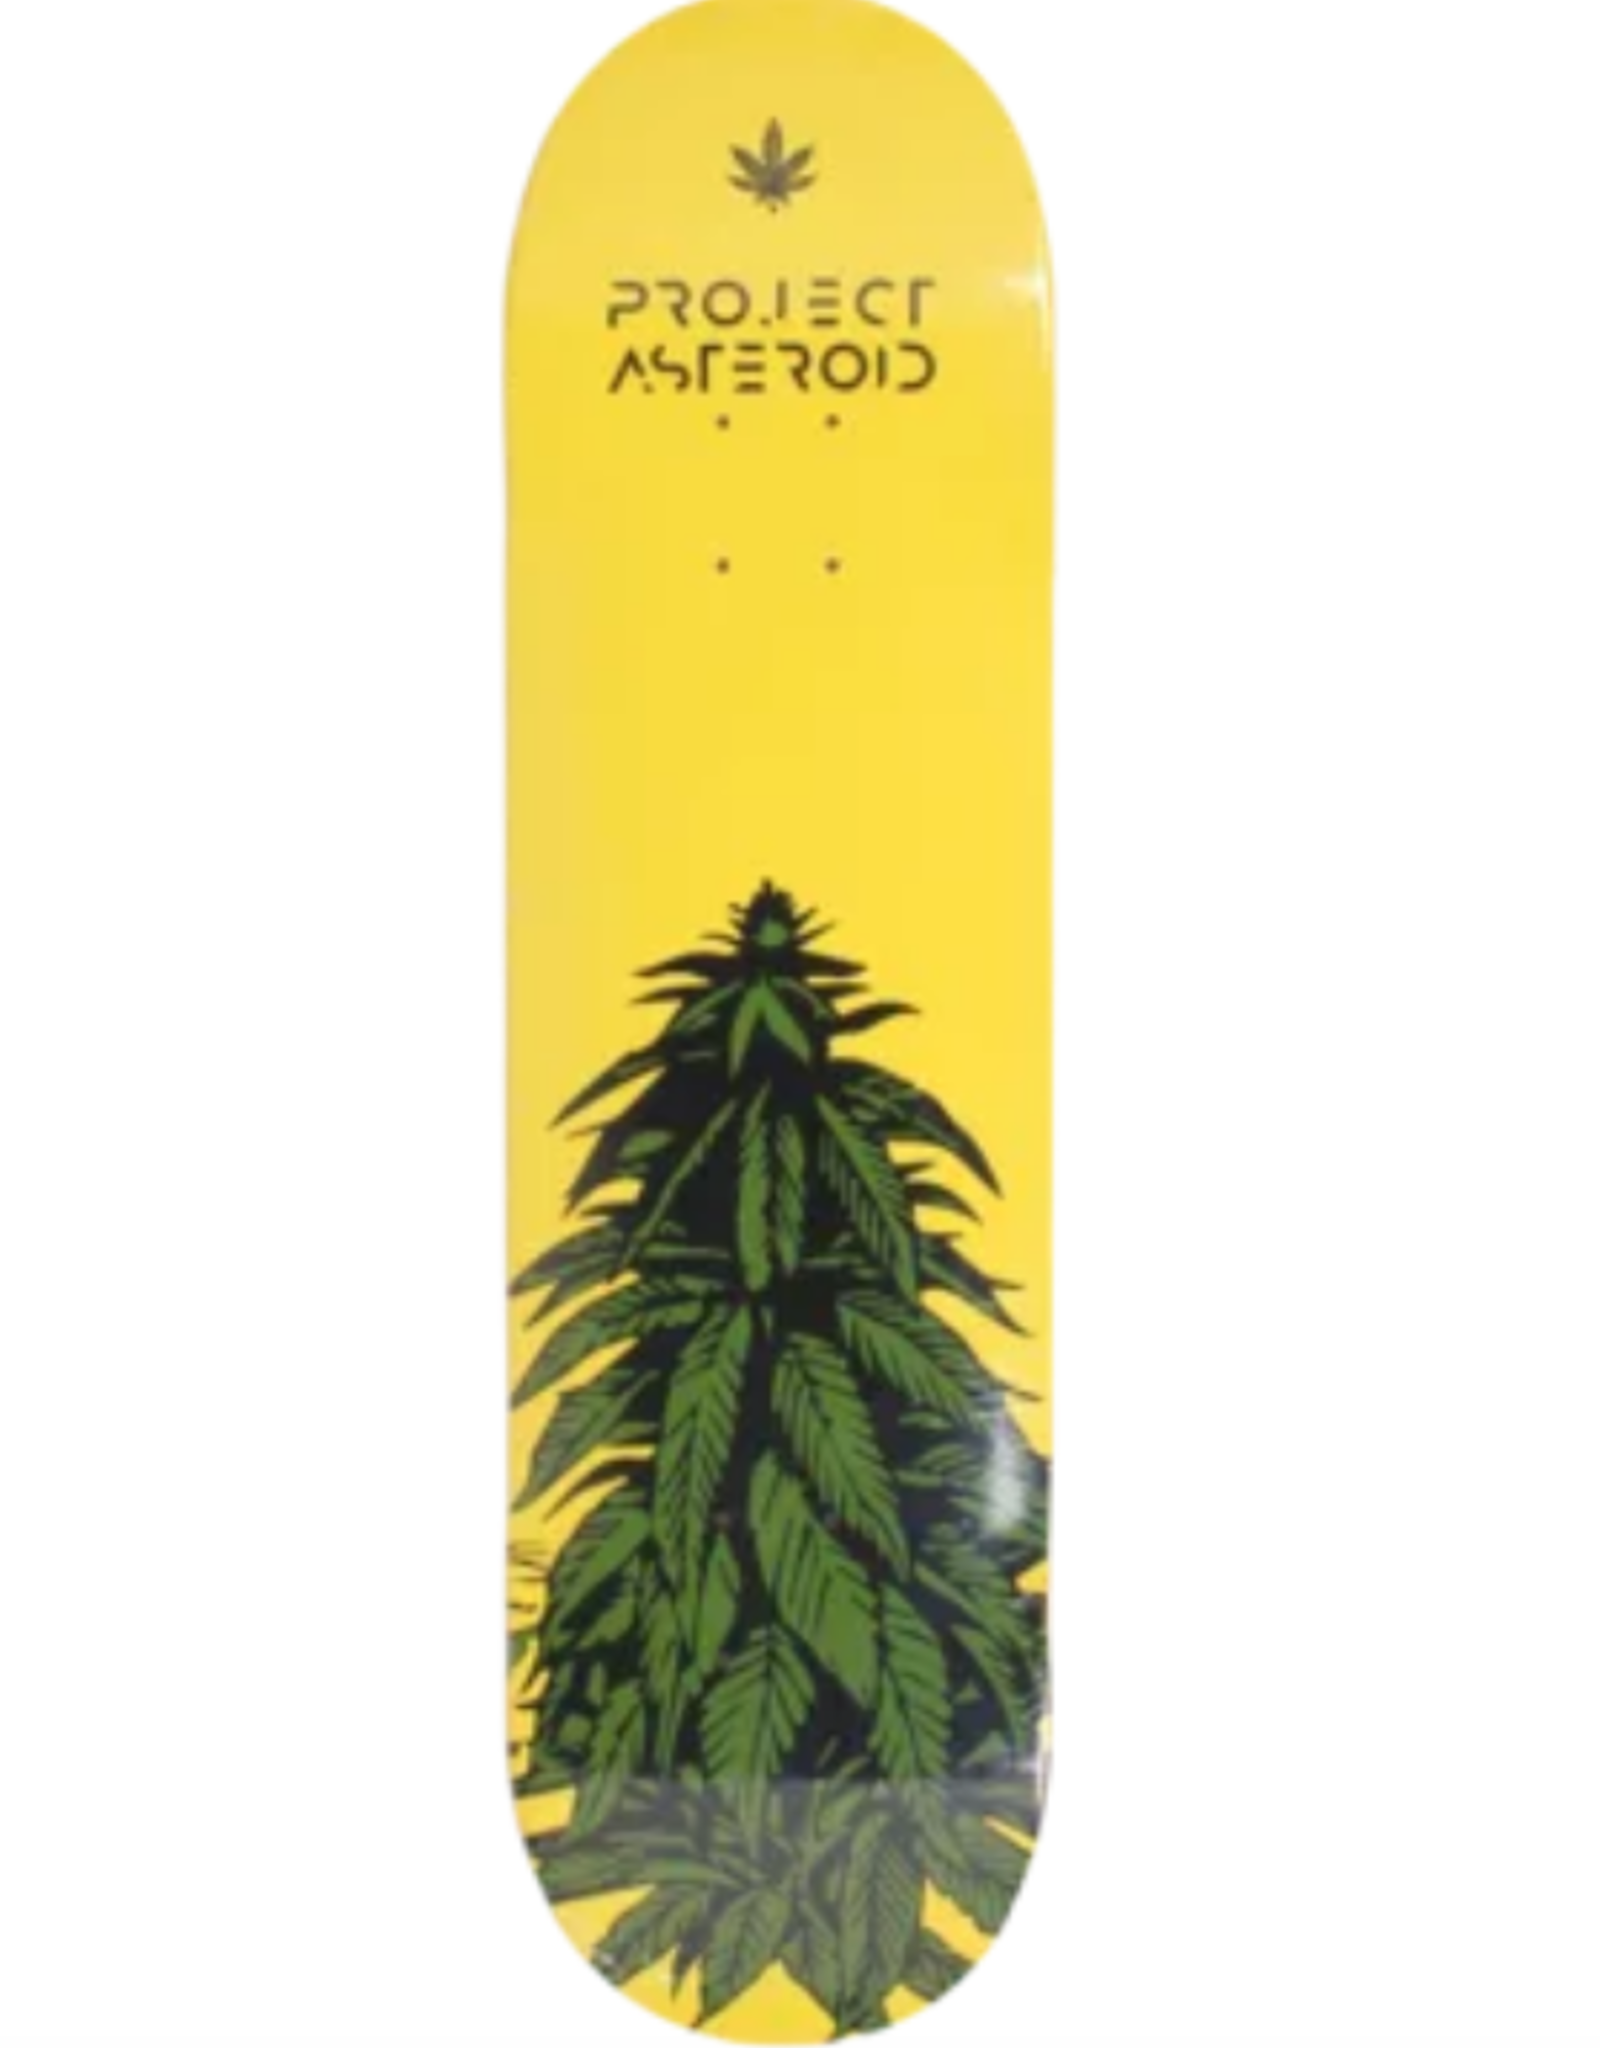 """PROJECT ASTEROID PROJECT ASTEROID 8.5"""" GREEN BUD DECK"""